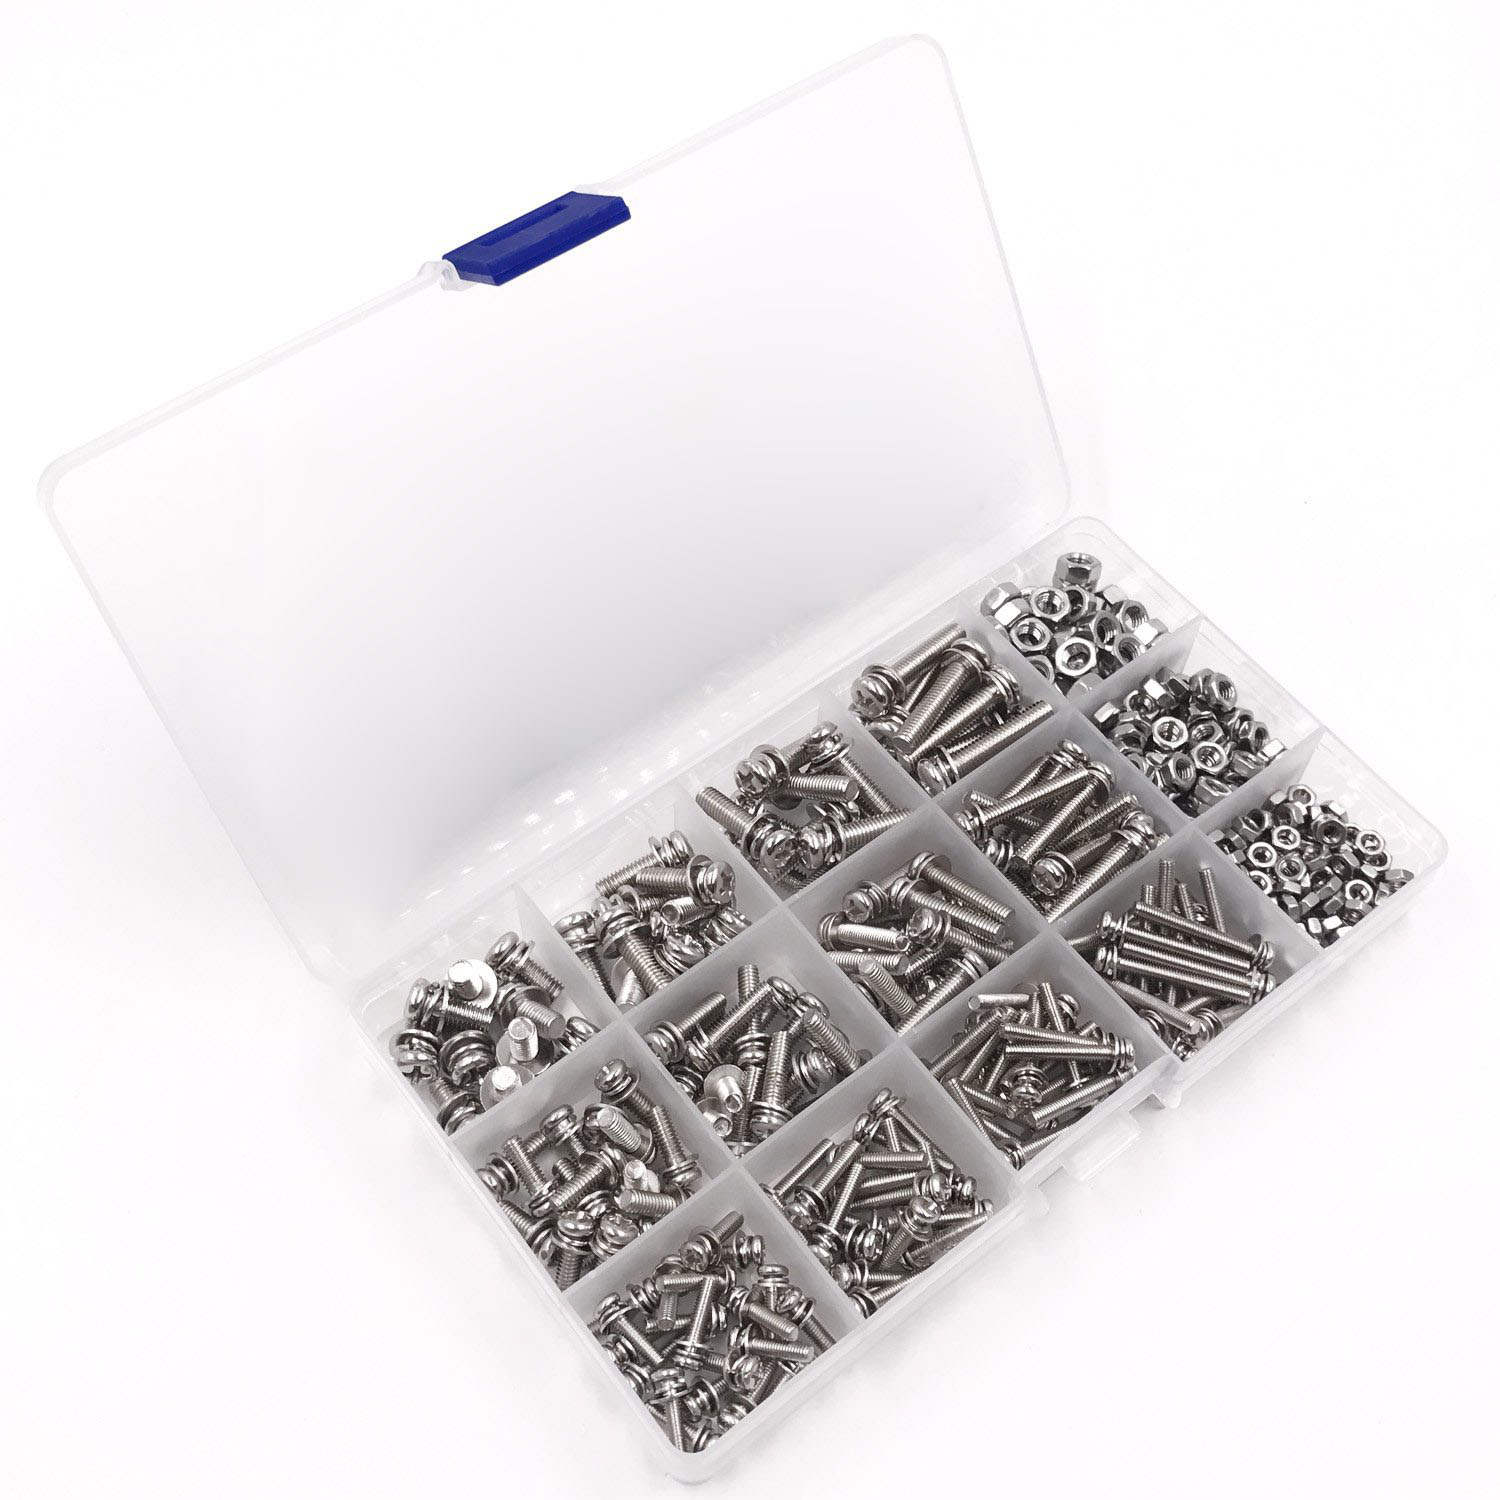 US $11 75 17% OFF|360 Pack 12 Sizes Phillips Pan Head Machine Screws Bolts  Nuts Lock Flat Washer Assortment Kit, Carbon Steel, M3 M4 M5-in Nut & Bolt